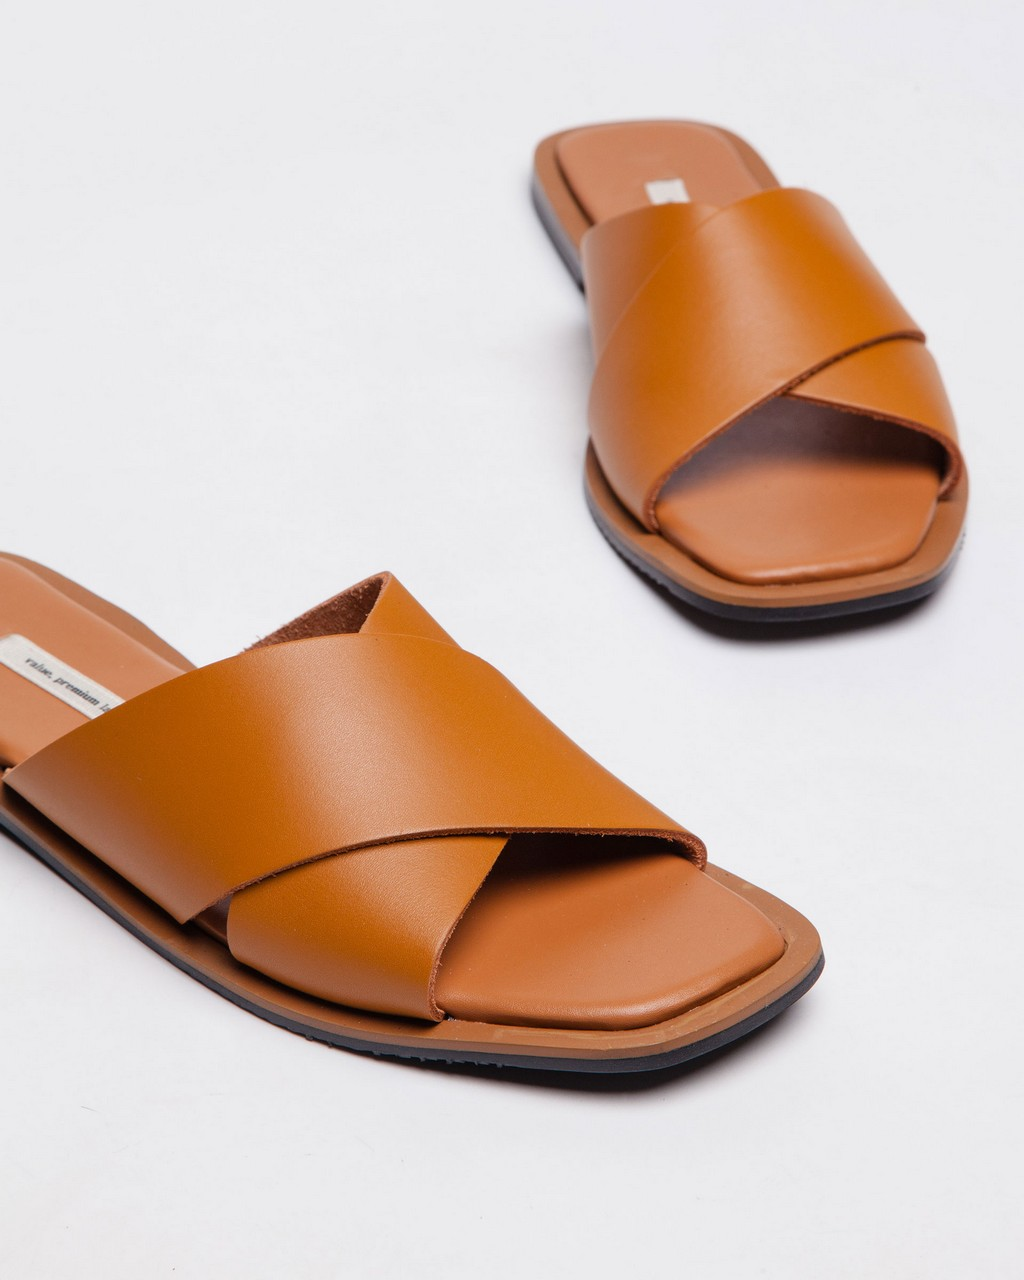 Tagtraume Nordic - Brown(브라운)